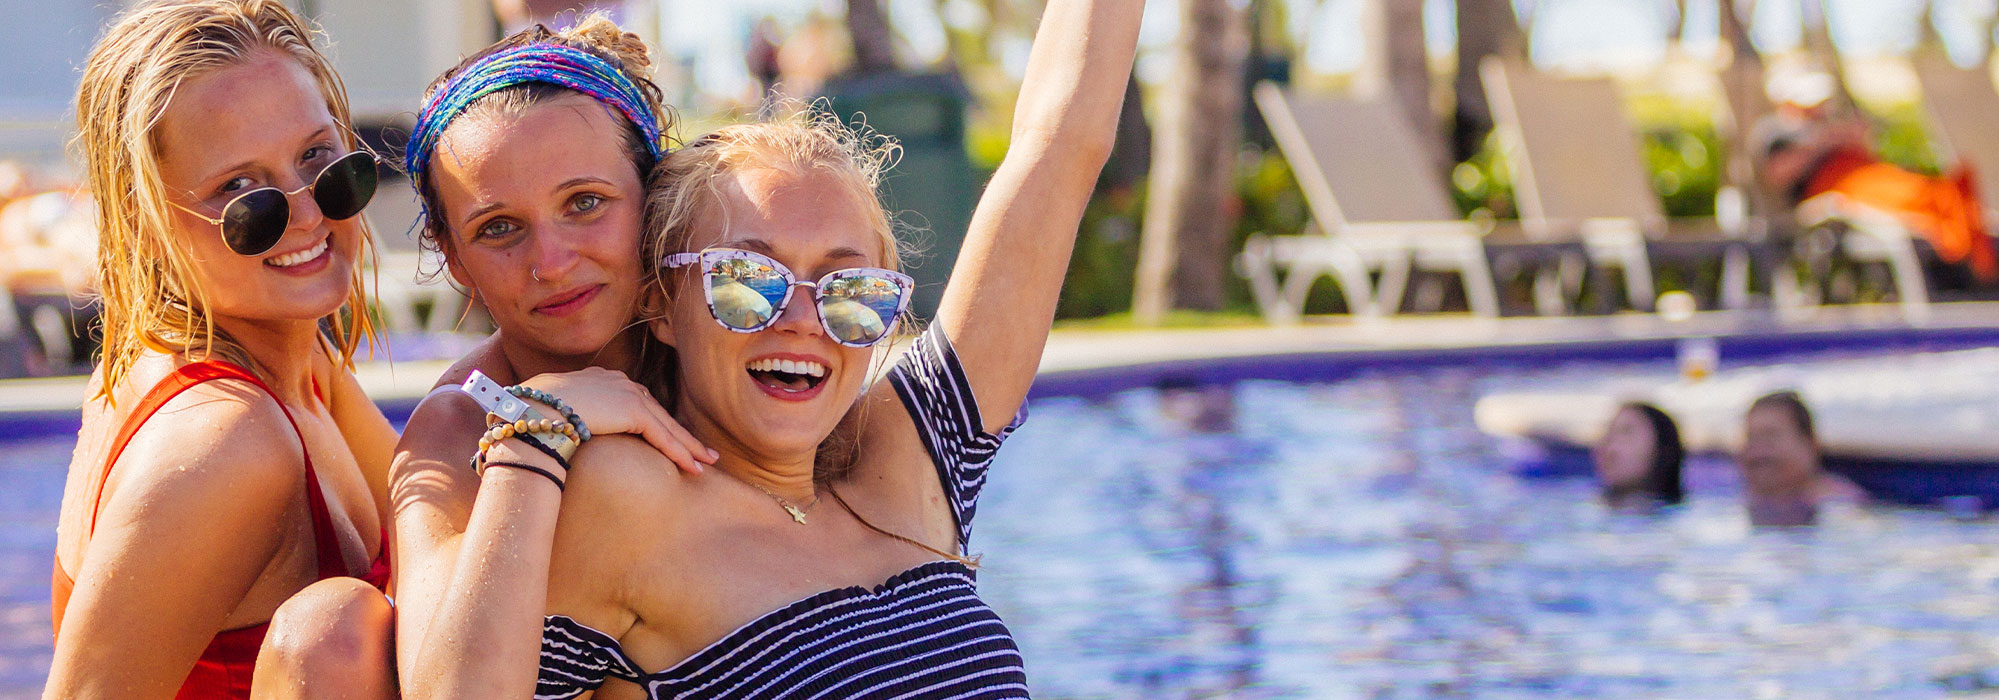 Occidental Caribe Punta Cana Spring Break 2020 Student Special